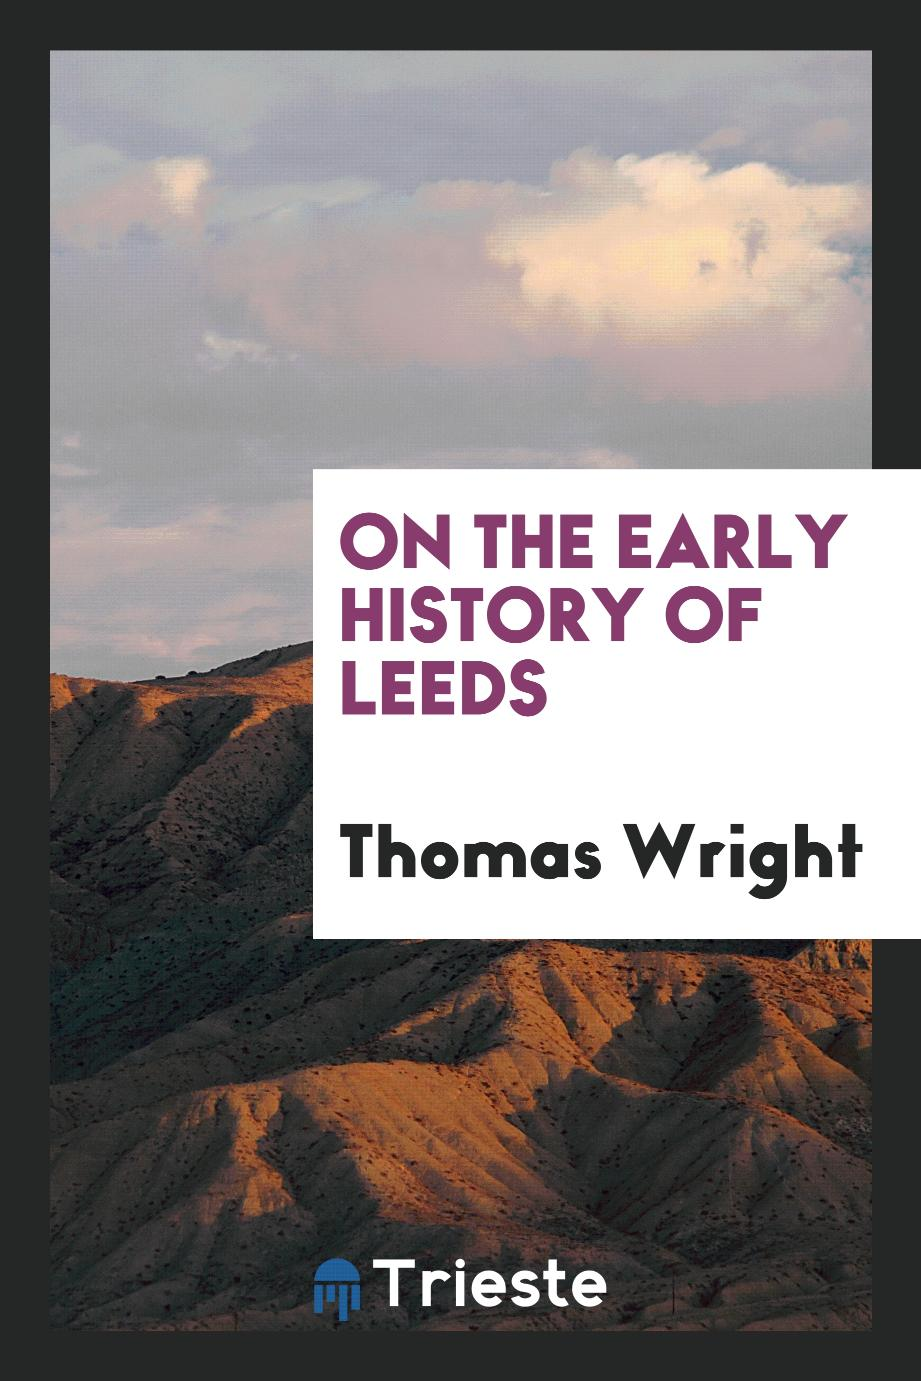 On the early history of Leeds